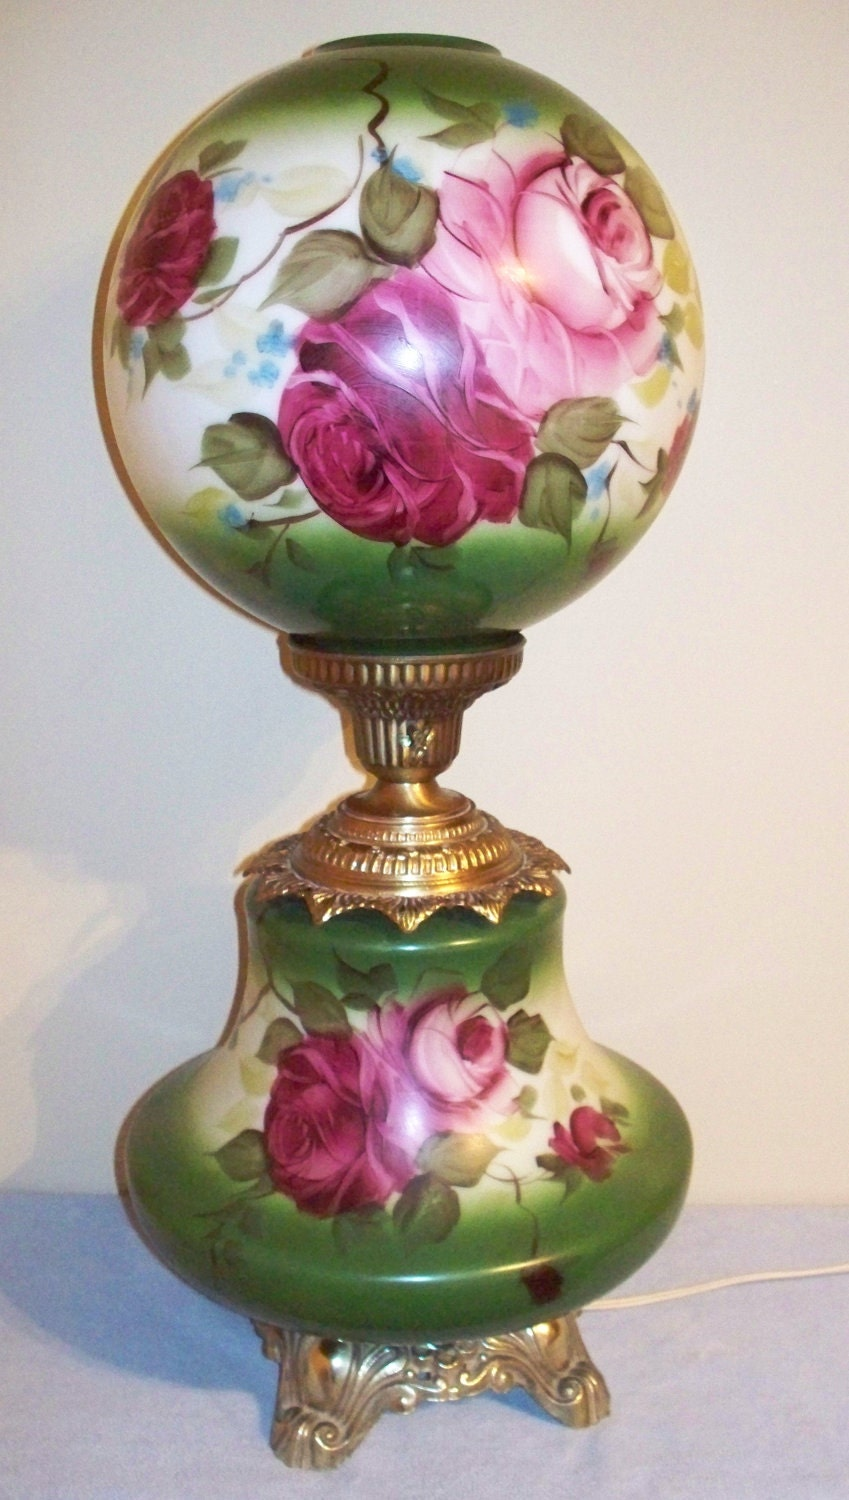 Vintage Electric Parlor Lamp Gwtw Ball Globe By